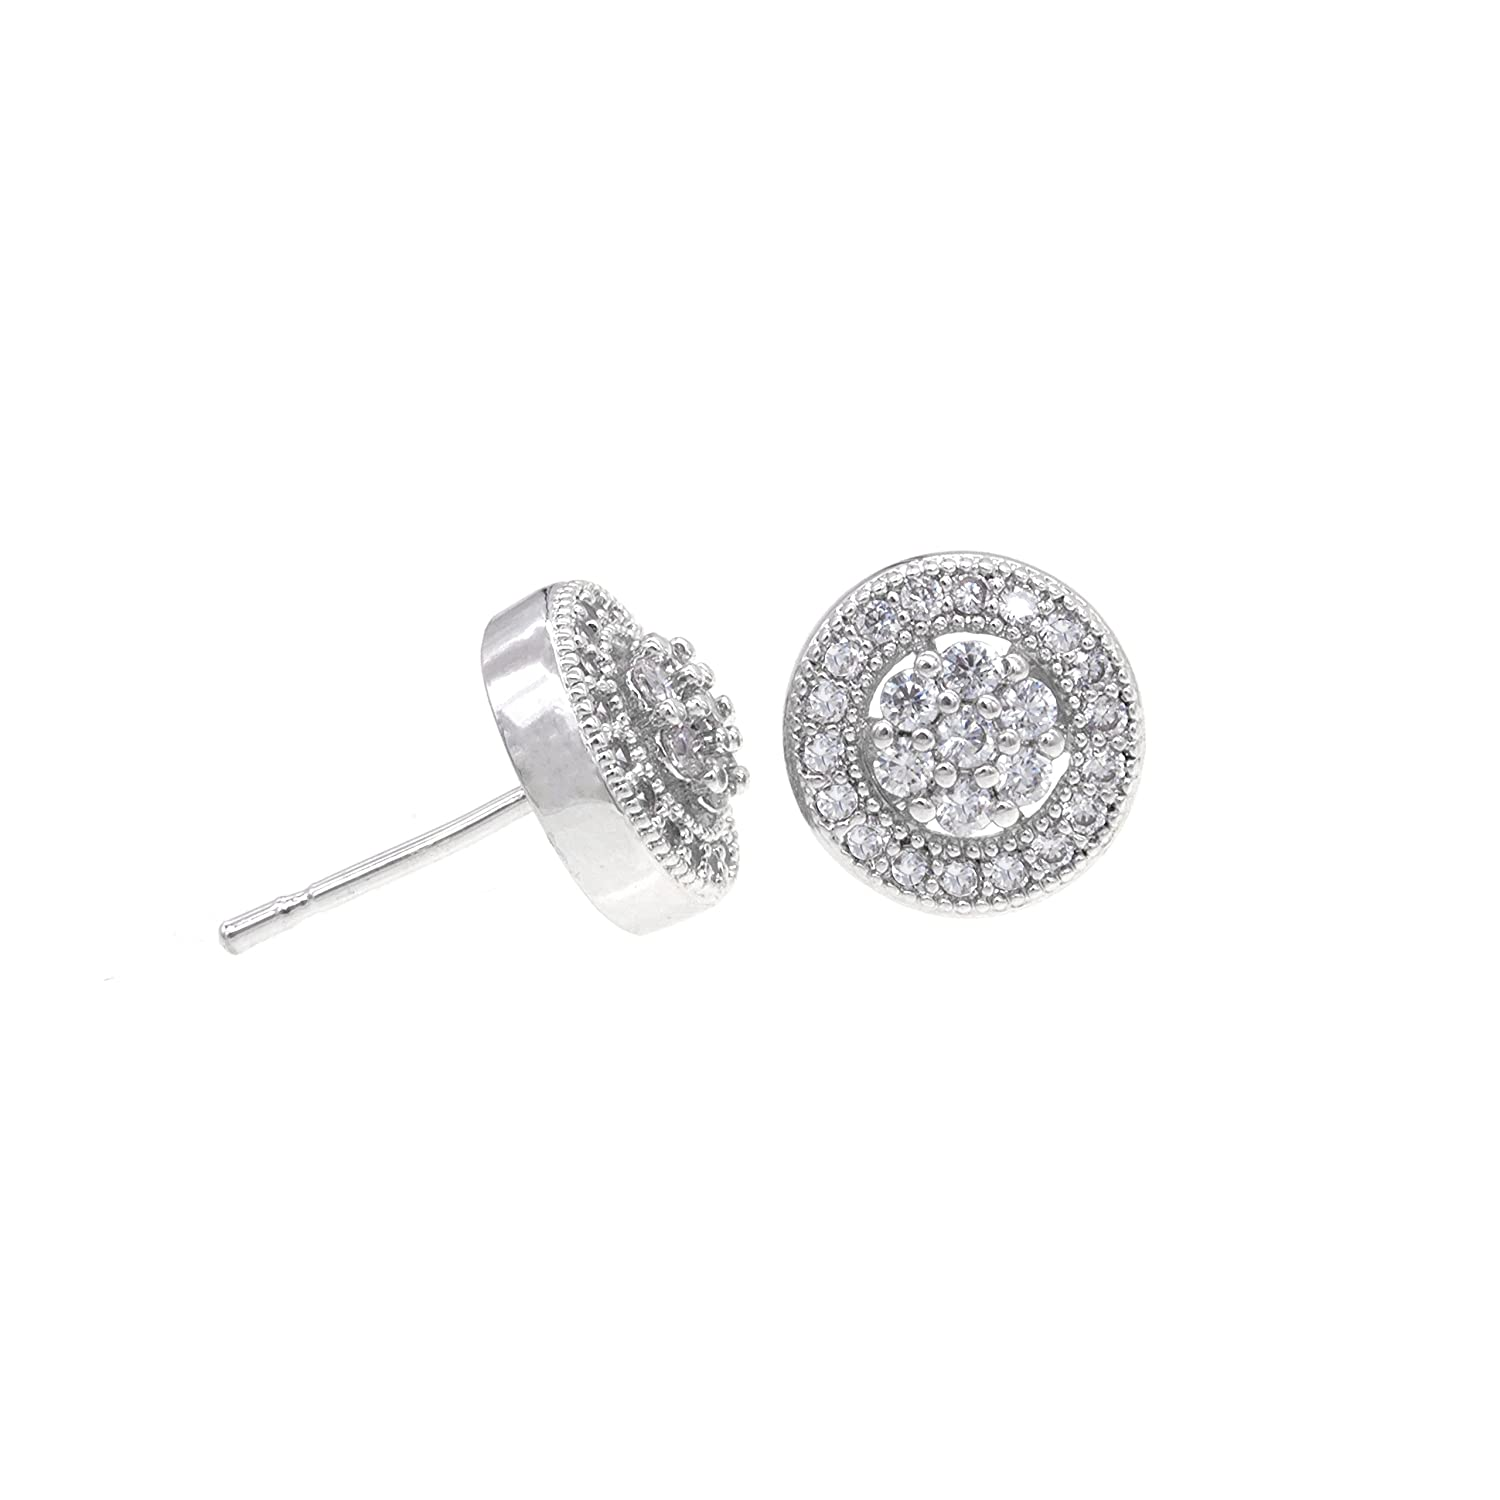 Round Stud Earrings Micro Paved Clear AAA CZ Jewelry Wedding Party Prom